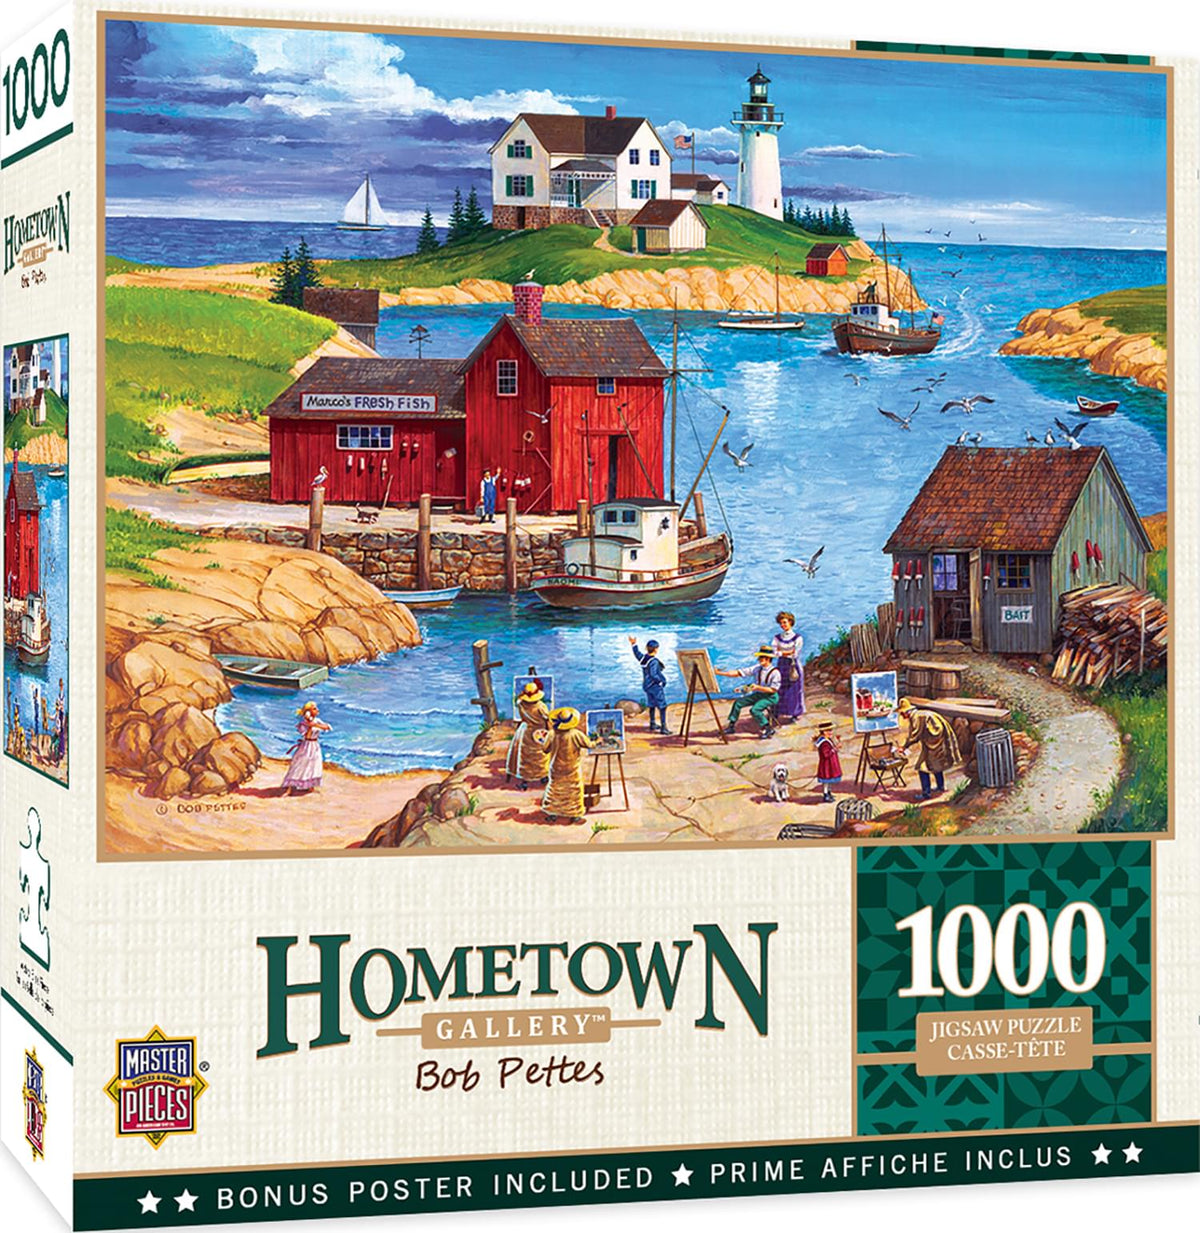 Hometown Gallery Ladium Bay 1000 Piece Jigsaw Puzzle